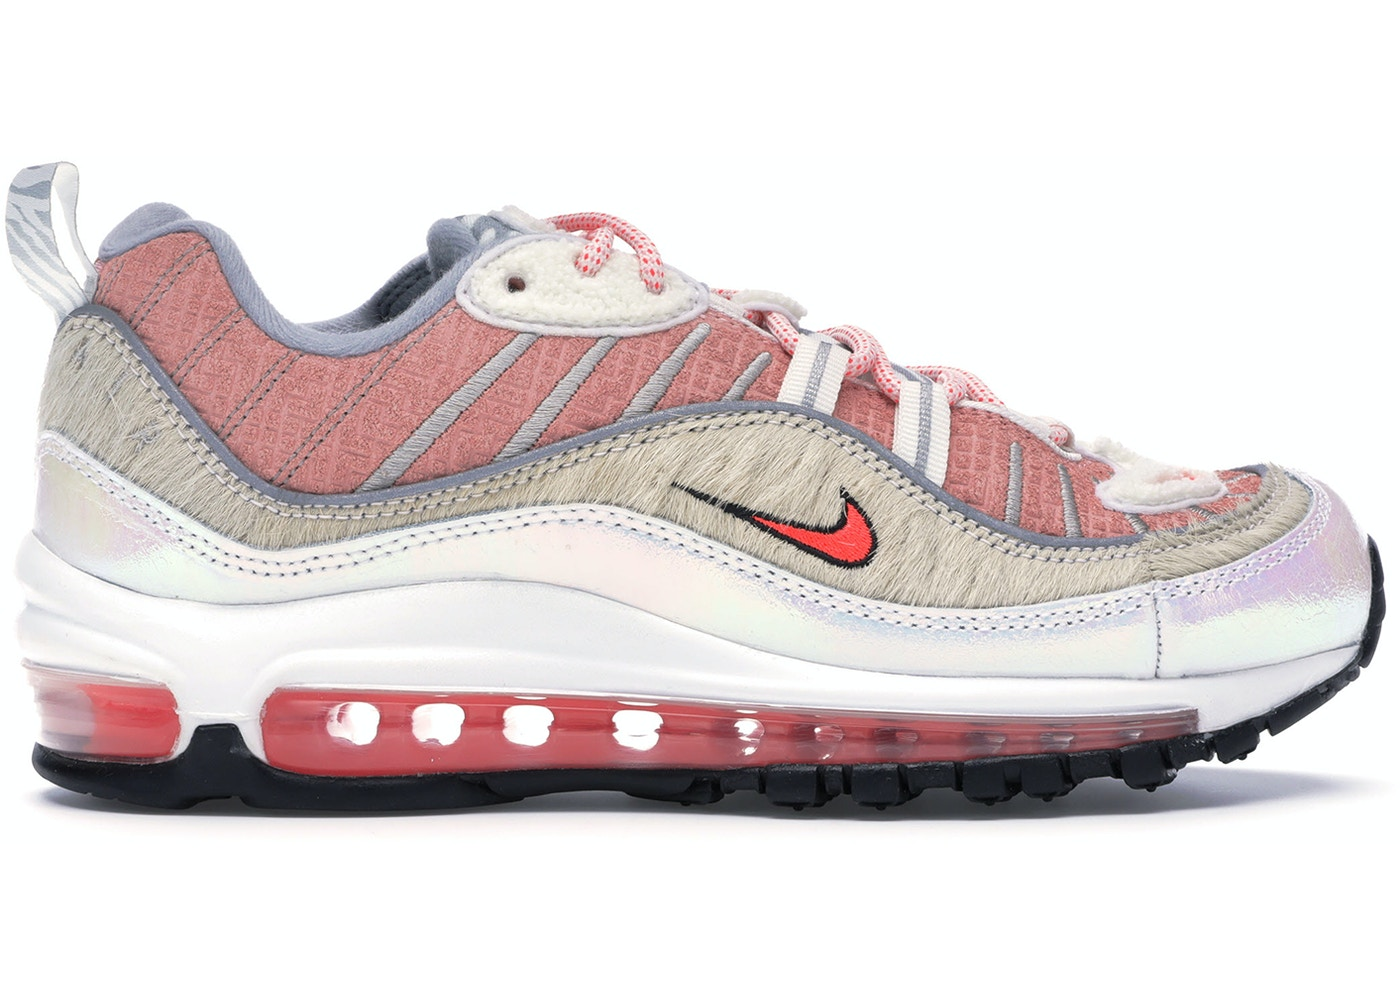 eefbfb28e829 Air Max 98 Chinese New Year 2019 (W) - BV6653-616